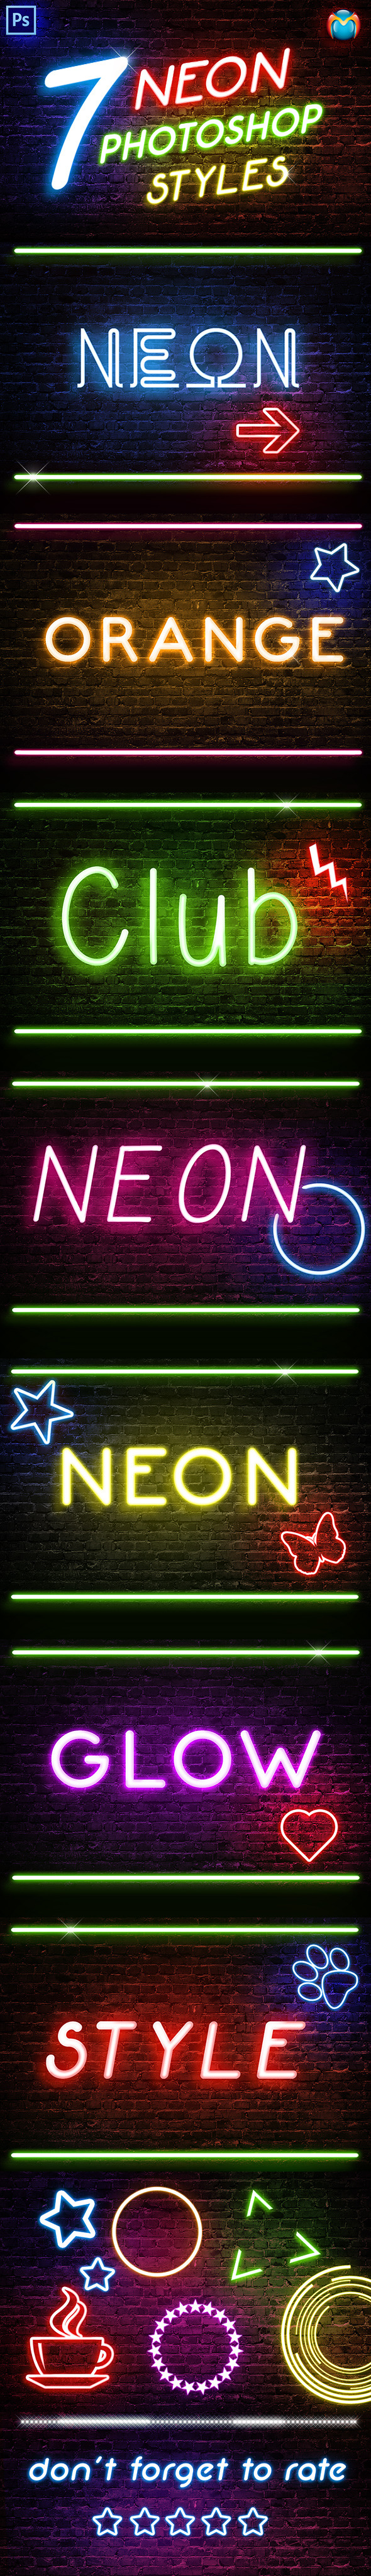 GraphicRiver Neon Photoshop Styles 9956867